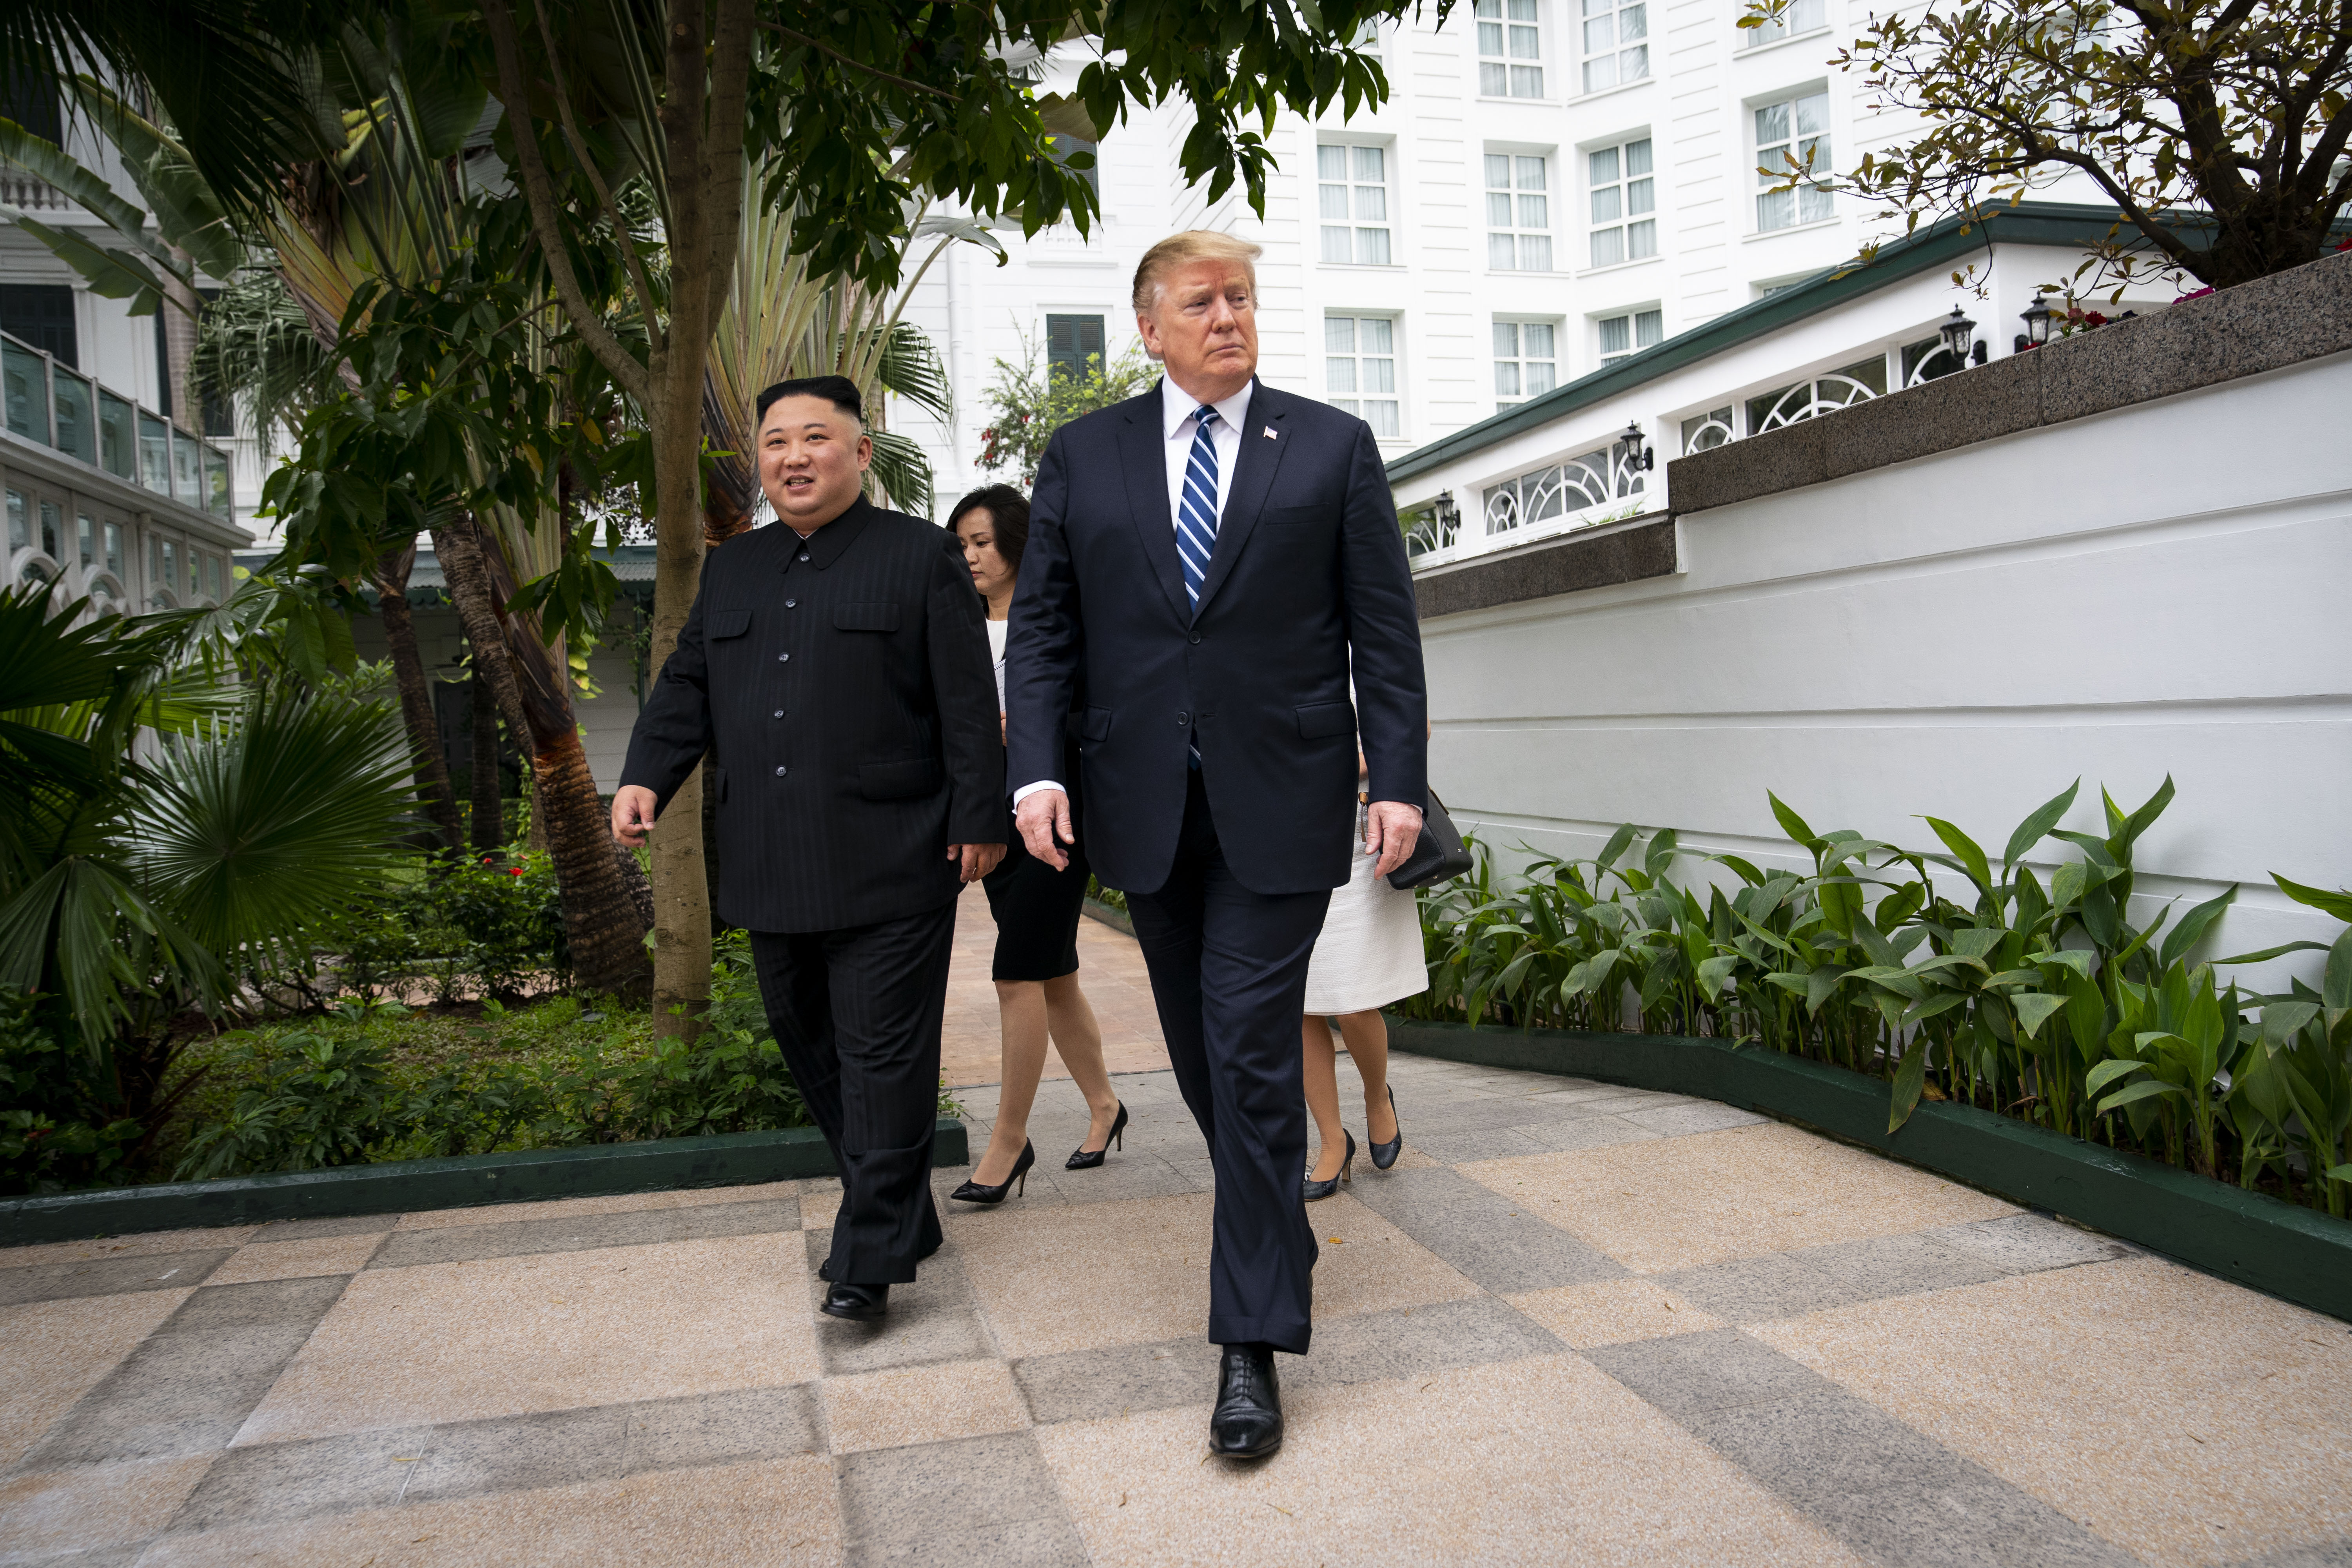 Donald Trump and Kim Jong-un walk together to the meeting at the Metropole Hotel in Hanoi on Thursday.